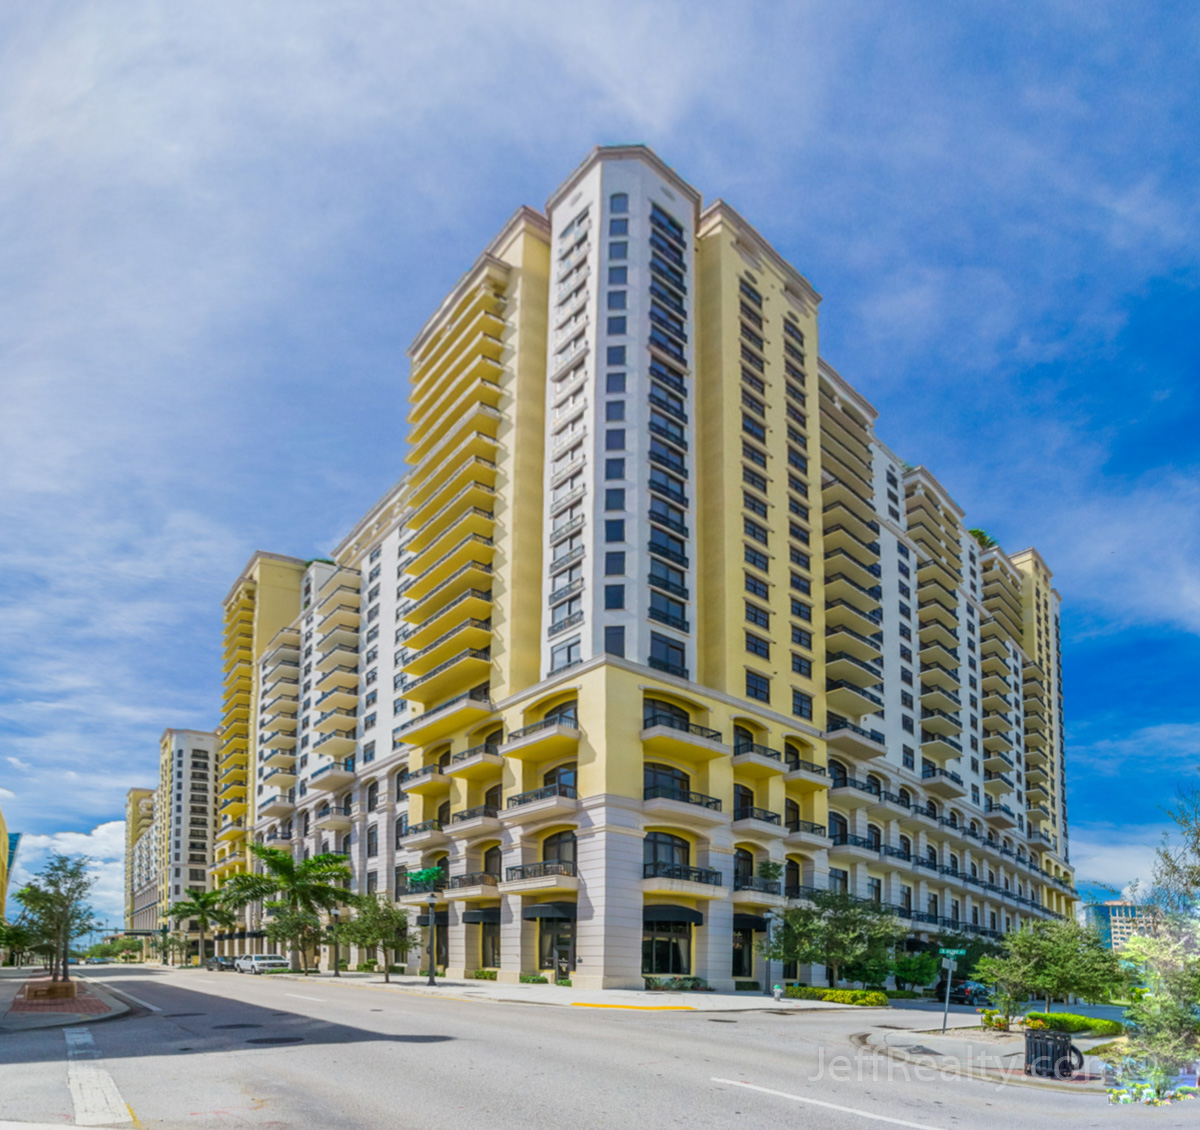 701 S Olive Ave #706 | Two City Plaza | West Palm Beach